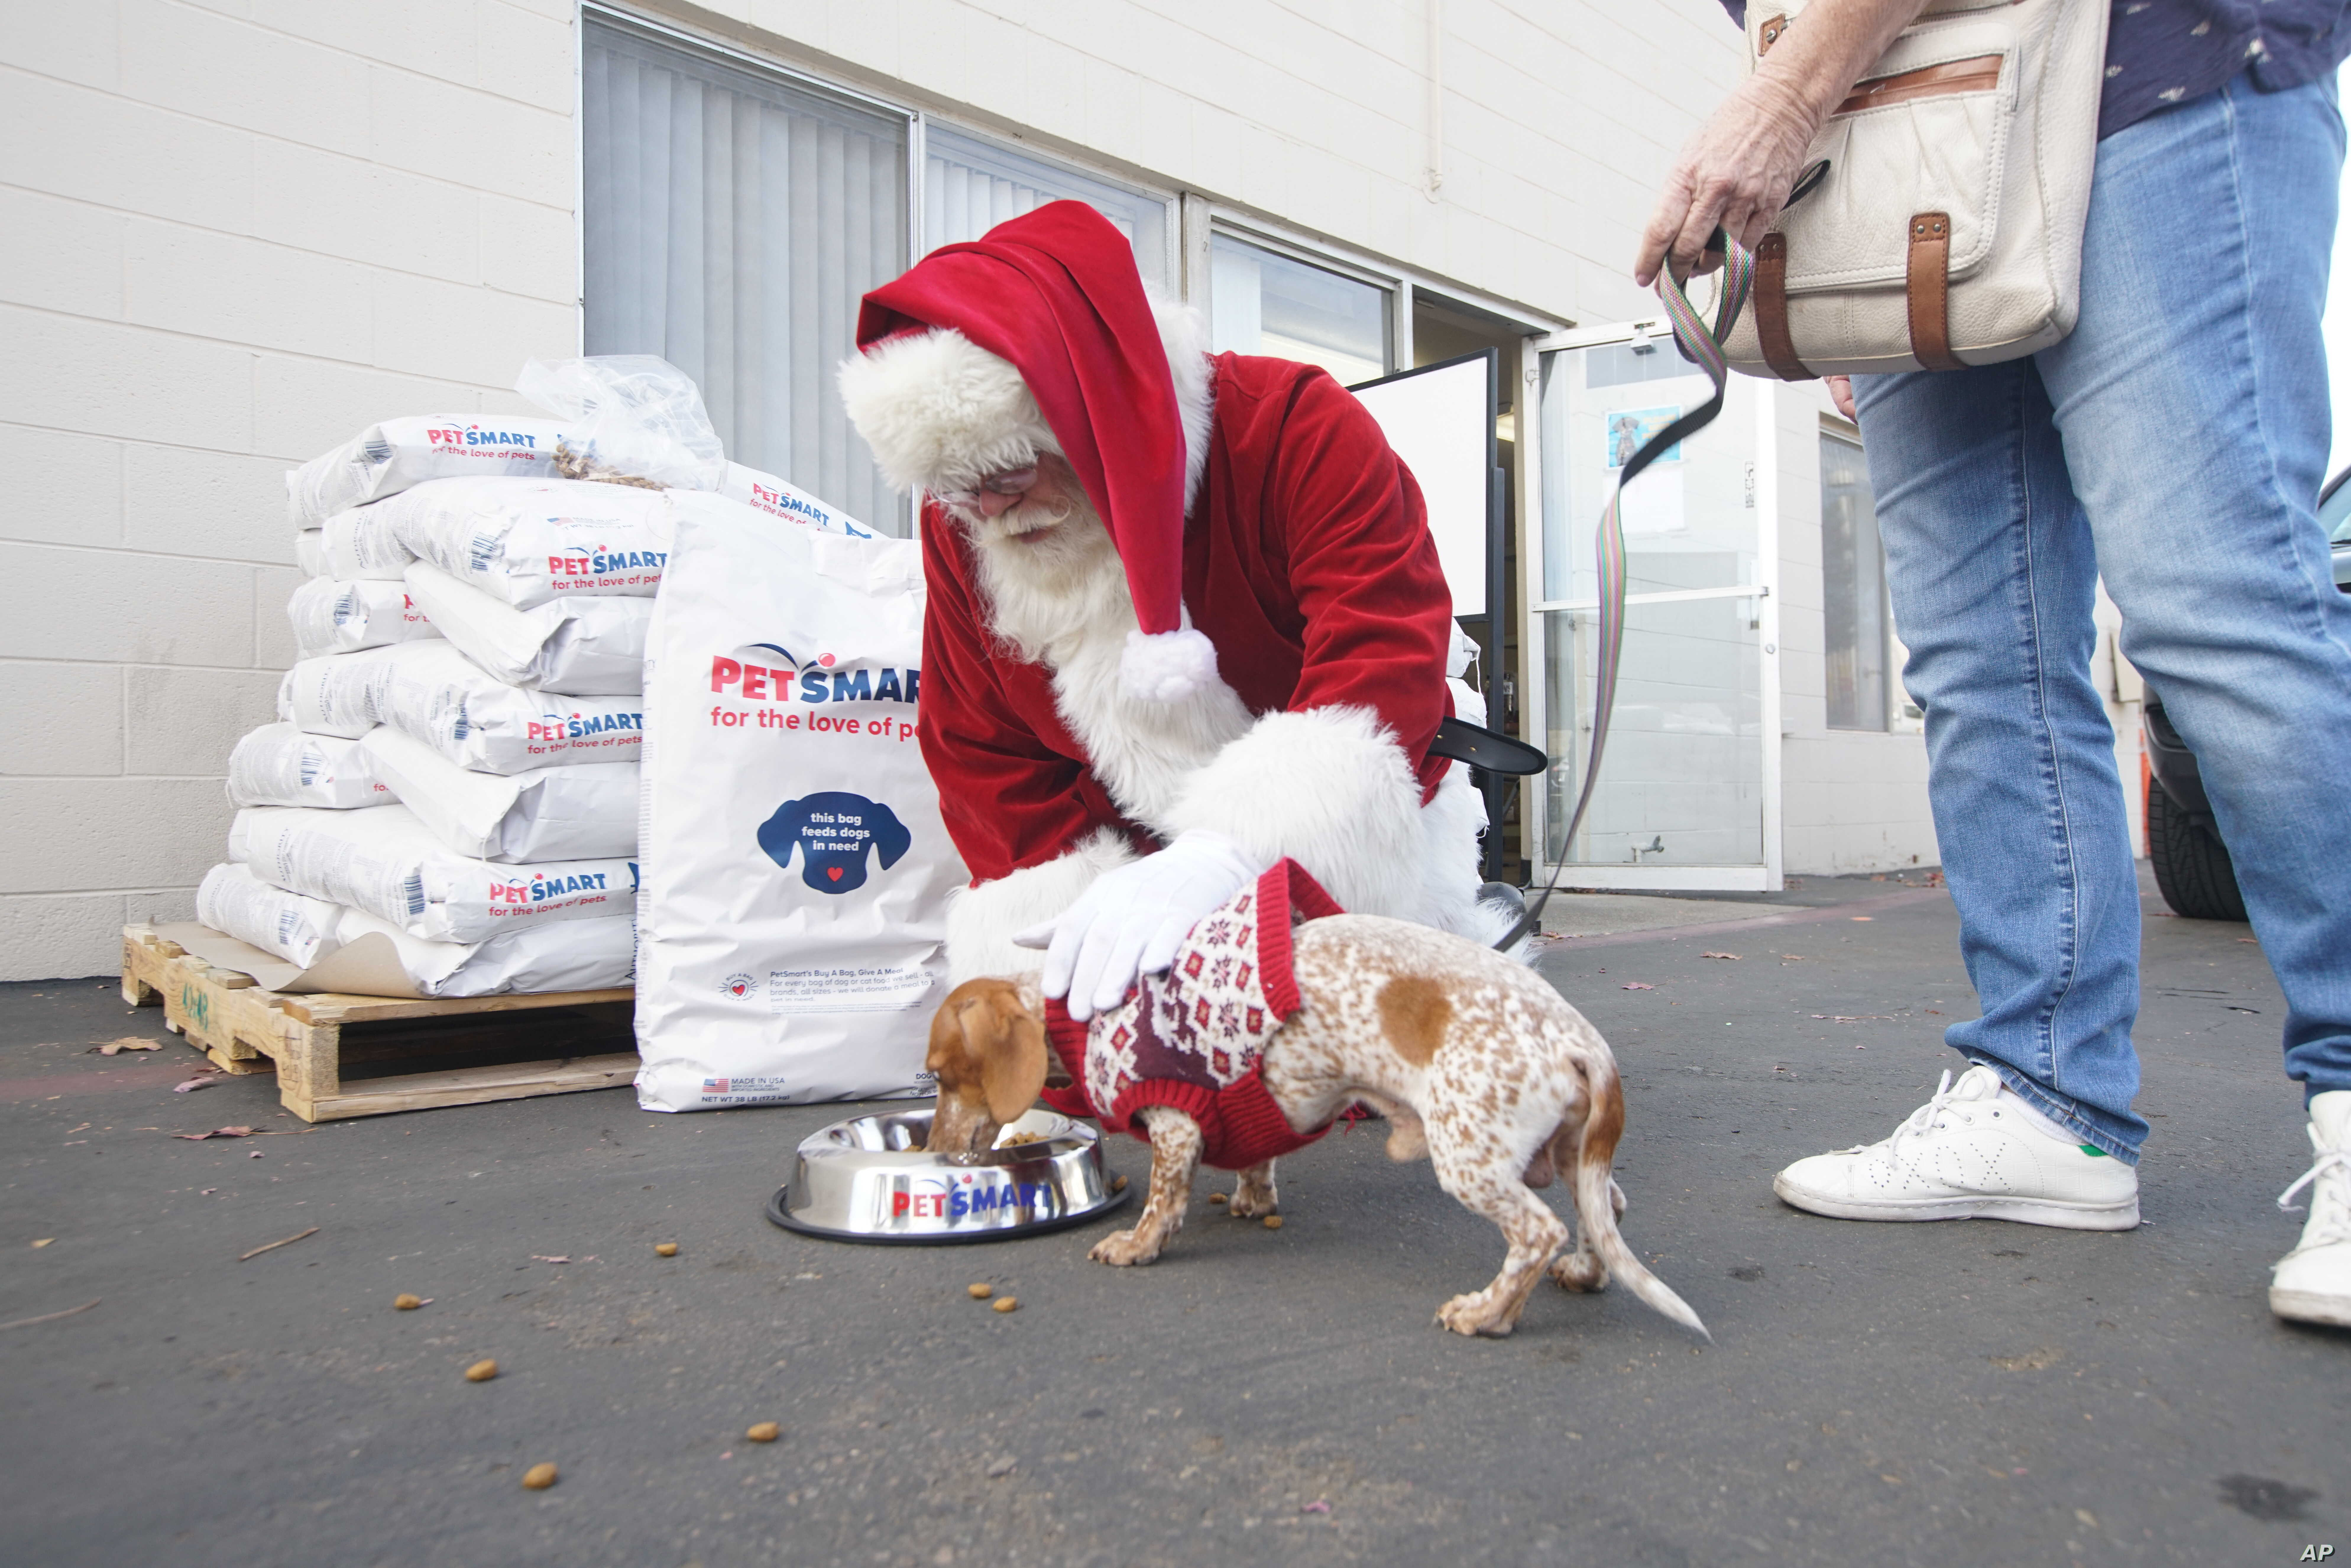 A PetSmart volunteer crew teams up with Santa Claus to load a truck with bags of free pet food for Rover's Retreat, a partner of San Diego Humane Society's PAWS program, on Tuesday, December 5, 2017 in San Diego.